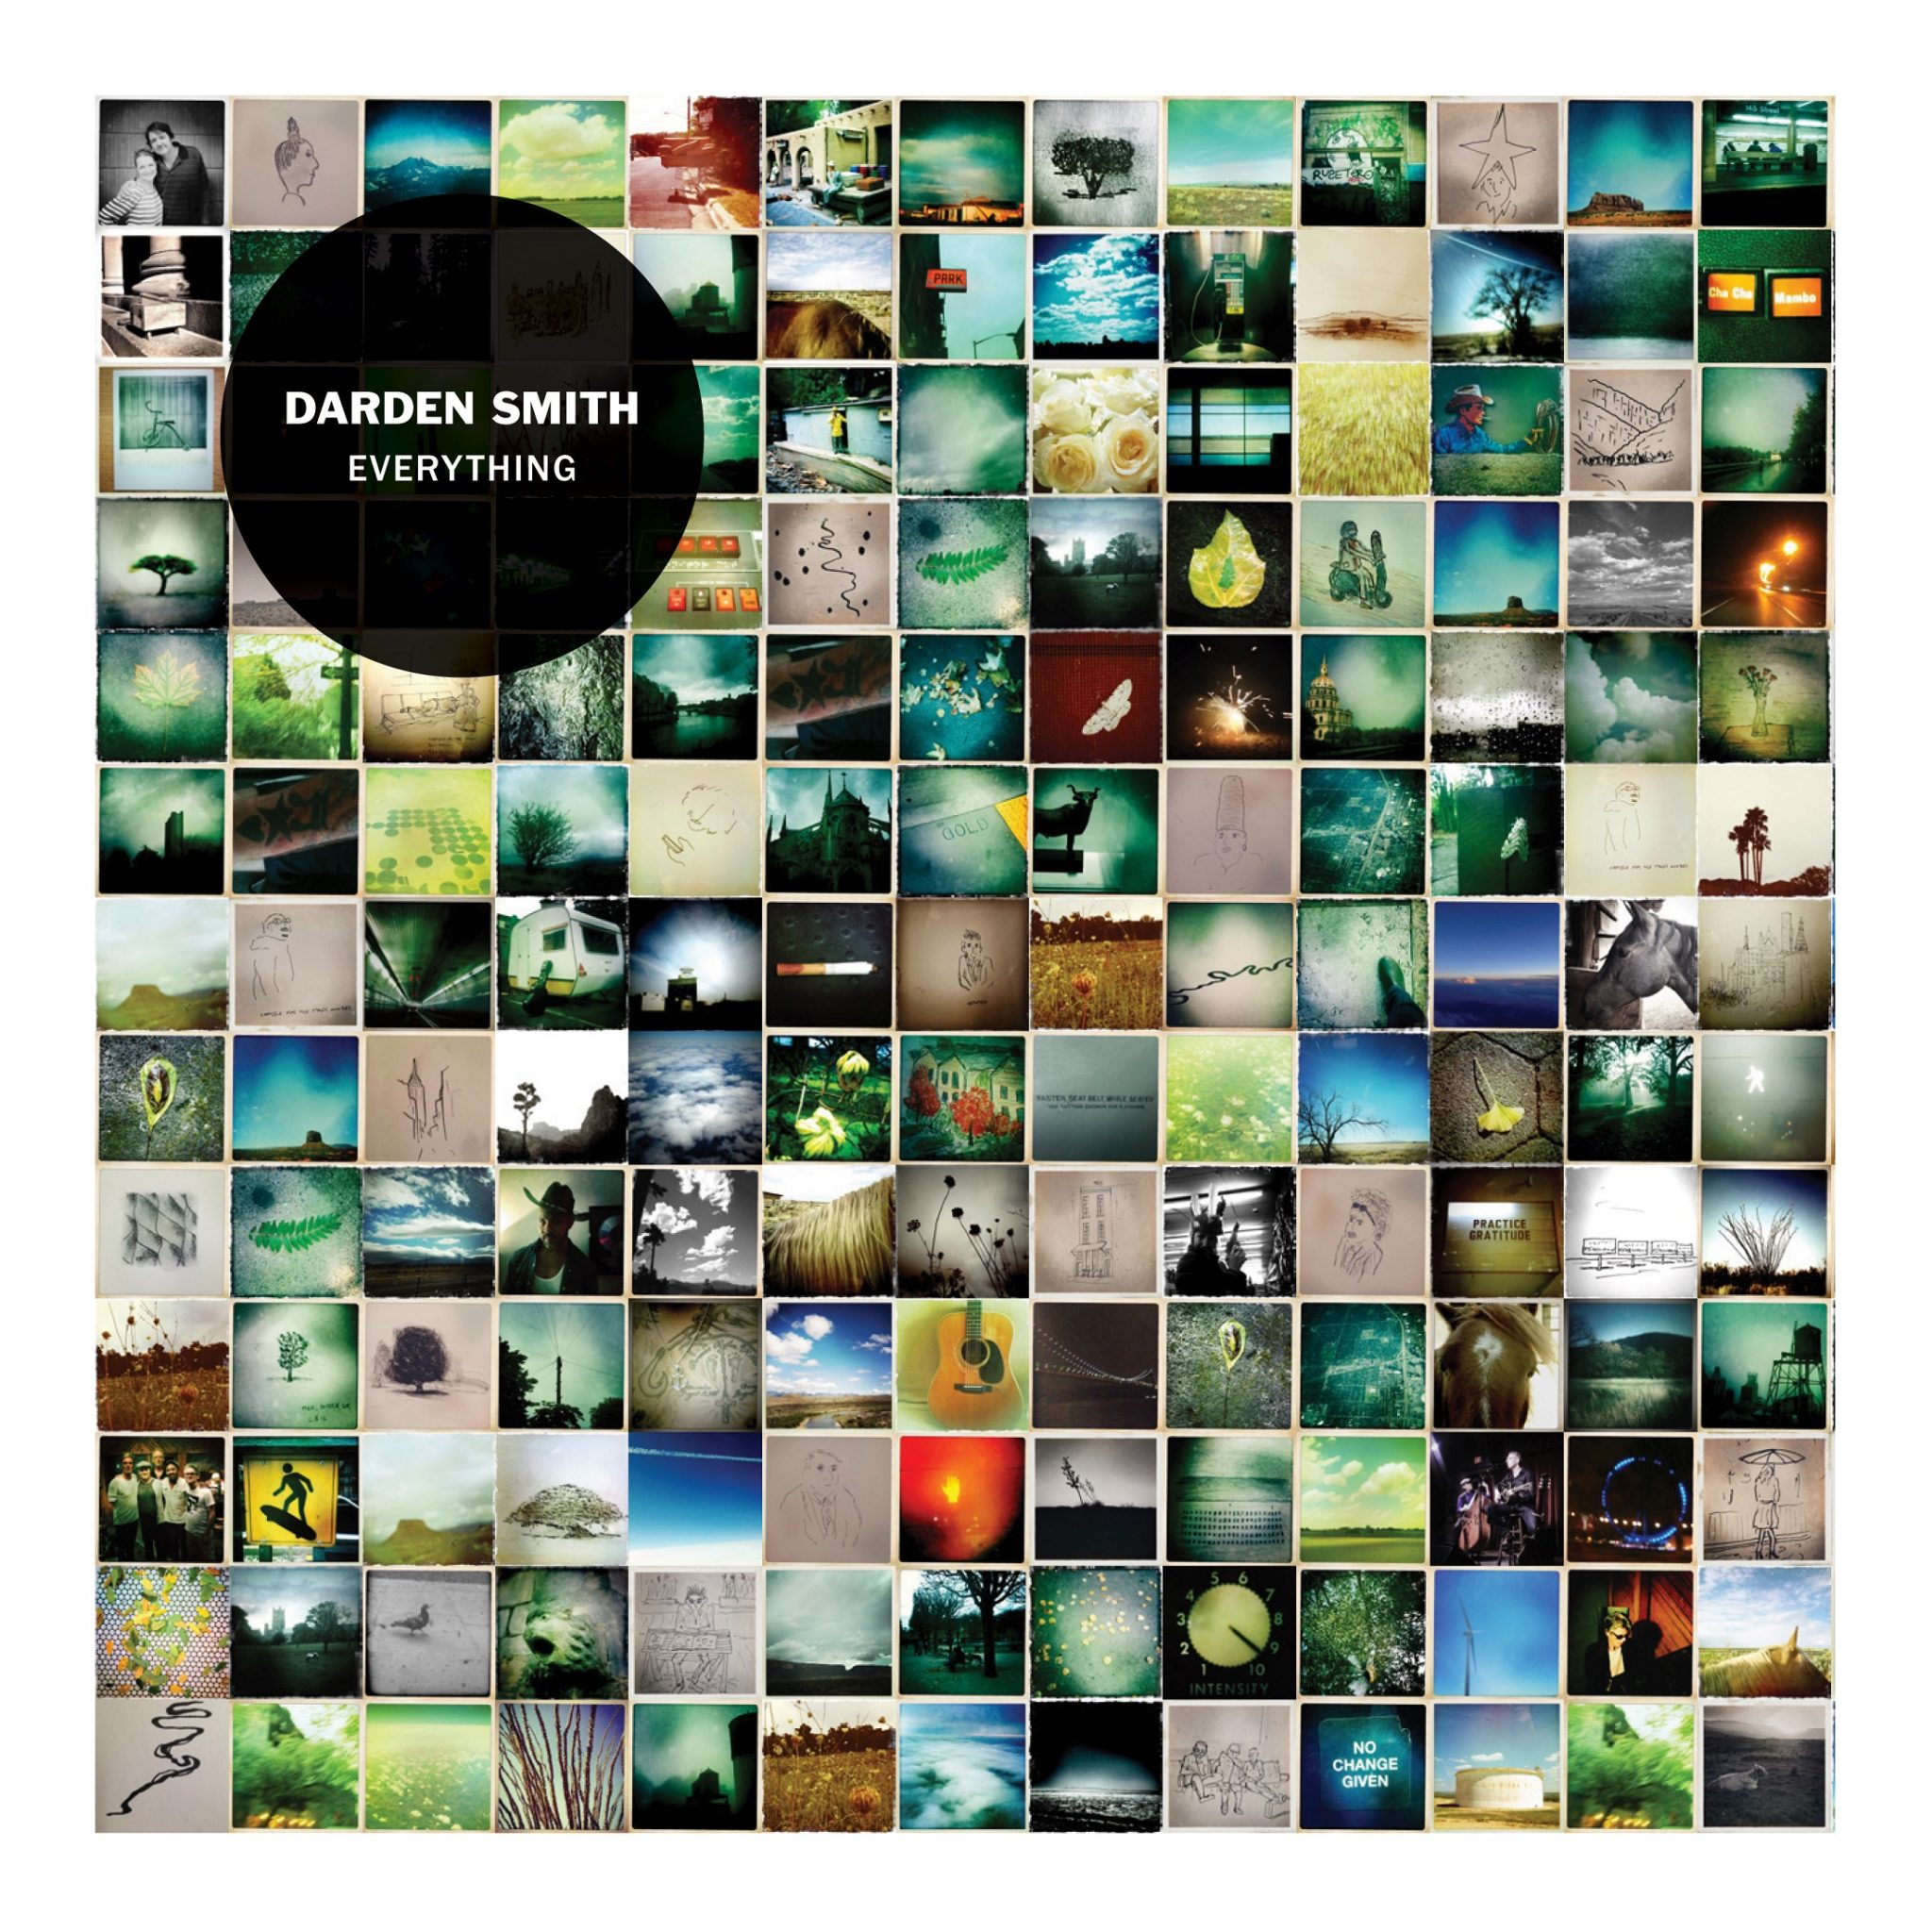 DARDEN SMITH 'Everything' CD - The